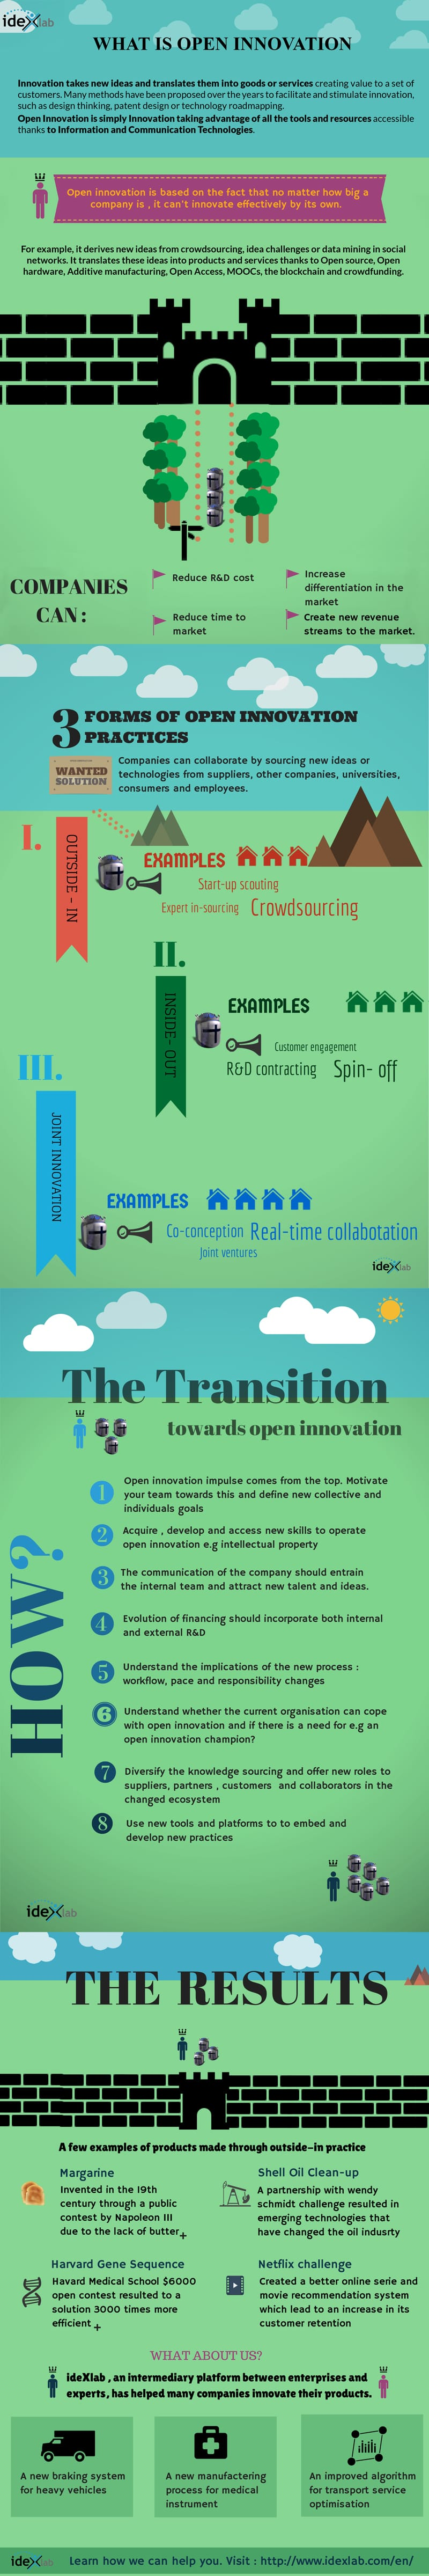 Open Innovation: an infographic